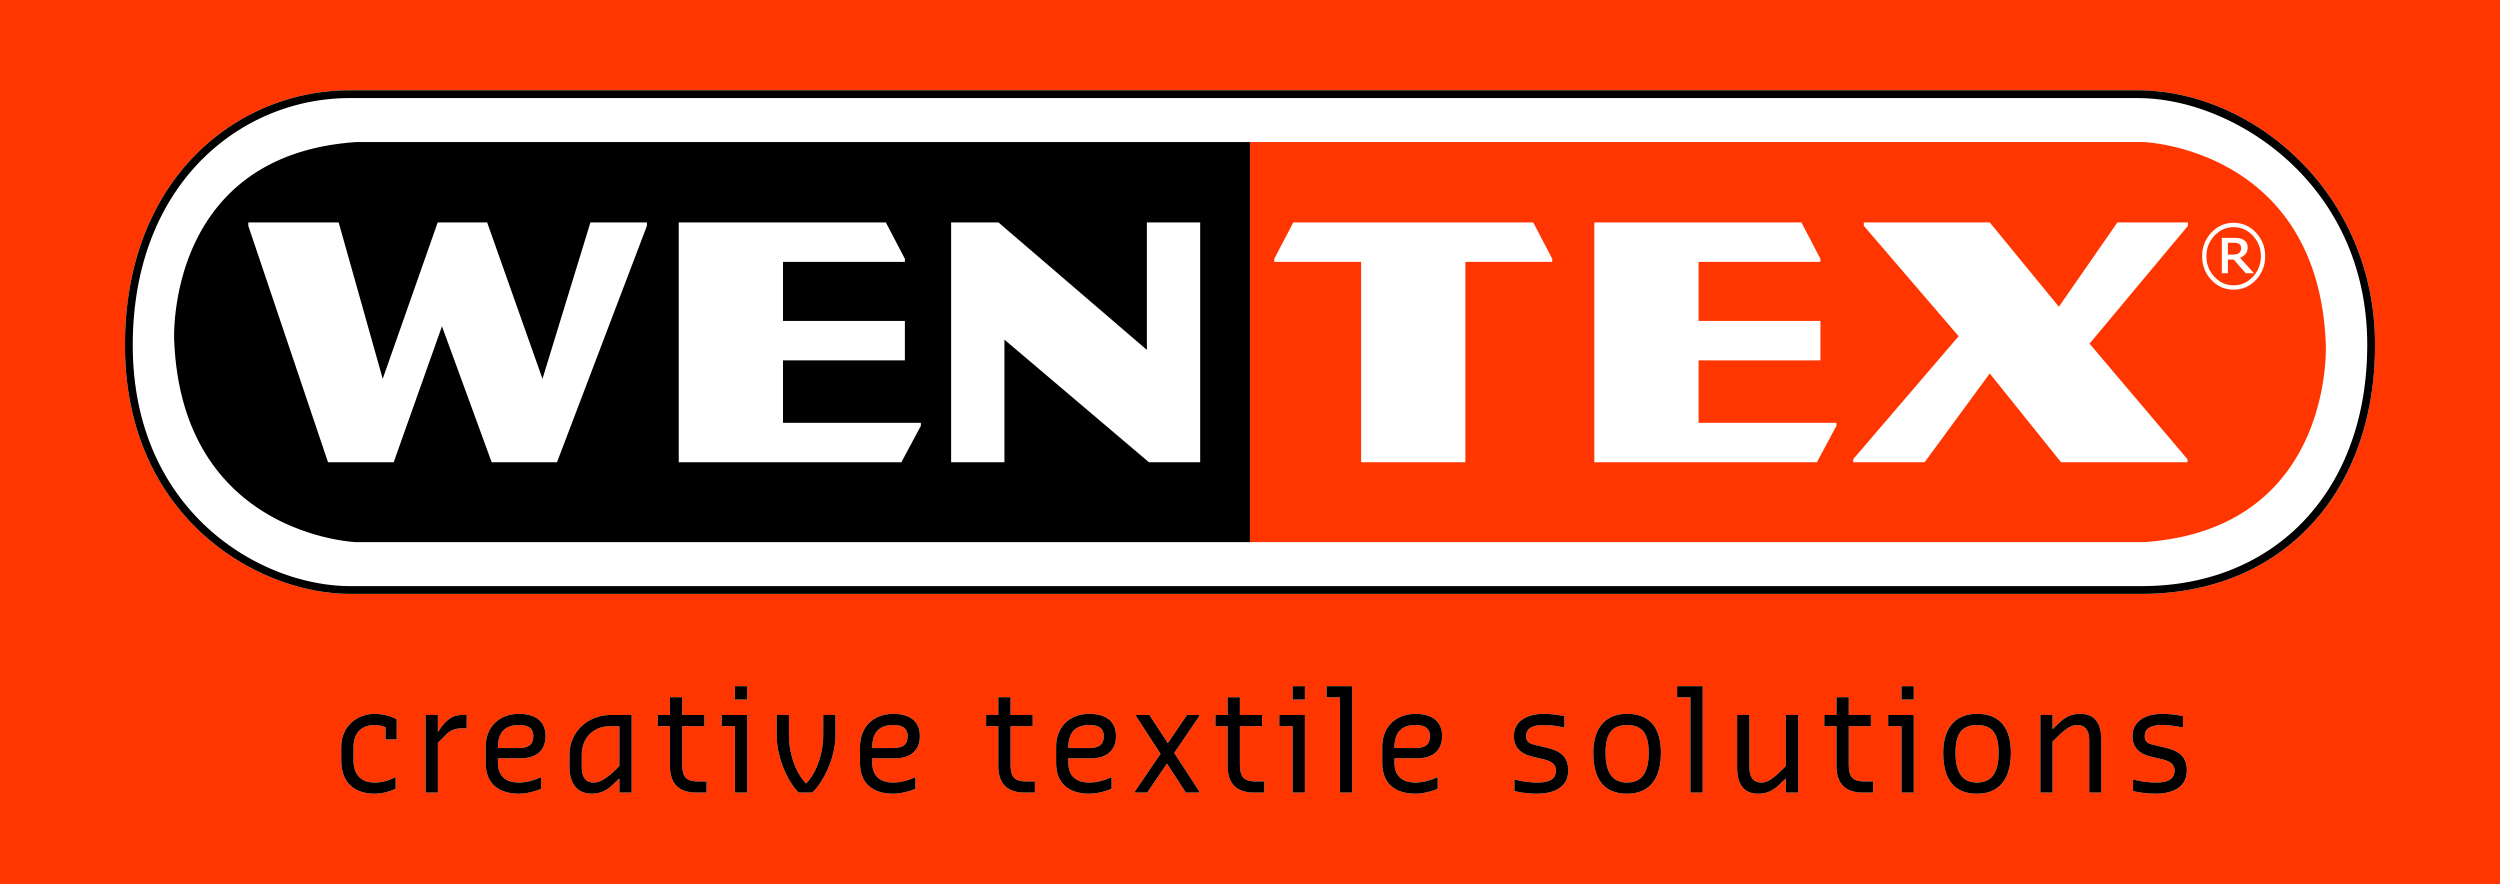 WENTEX logo 2014 CMYK Orange Background.jpg